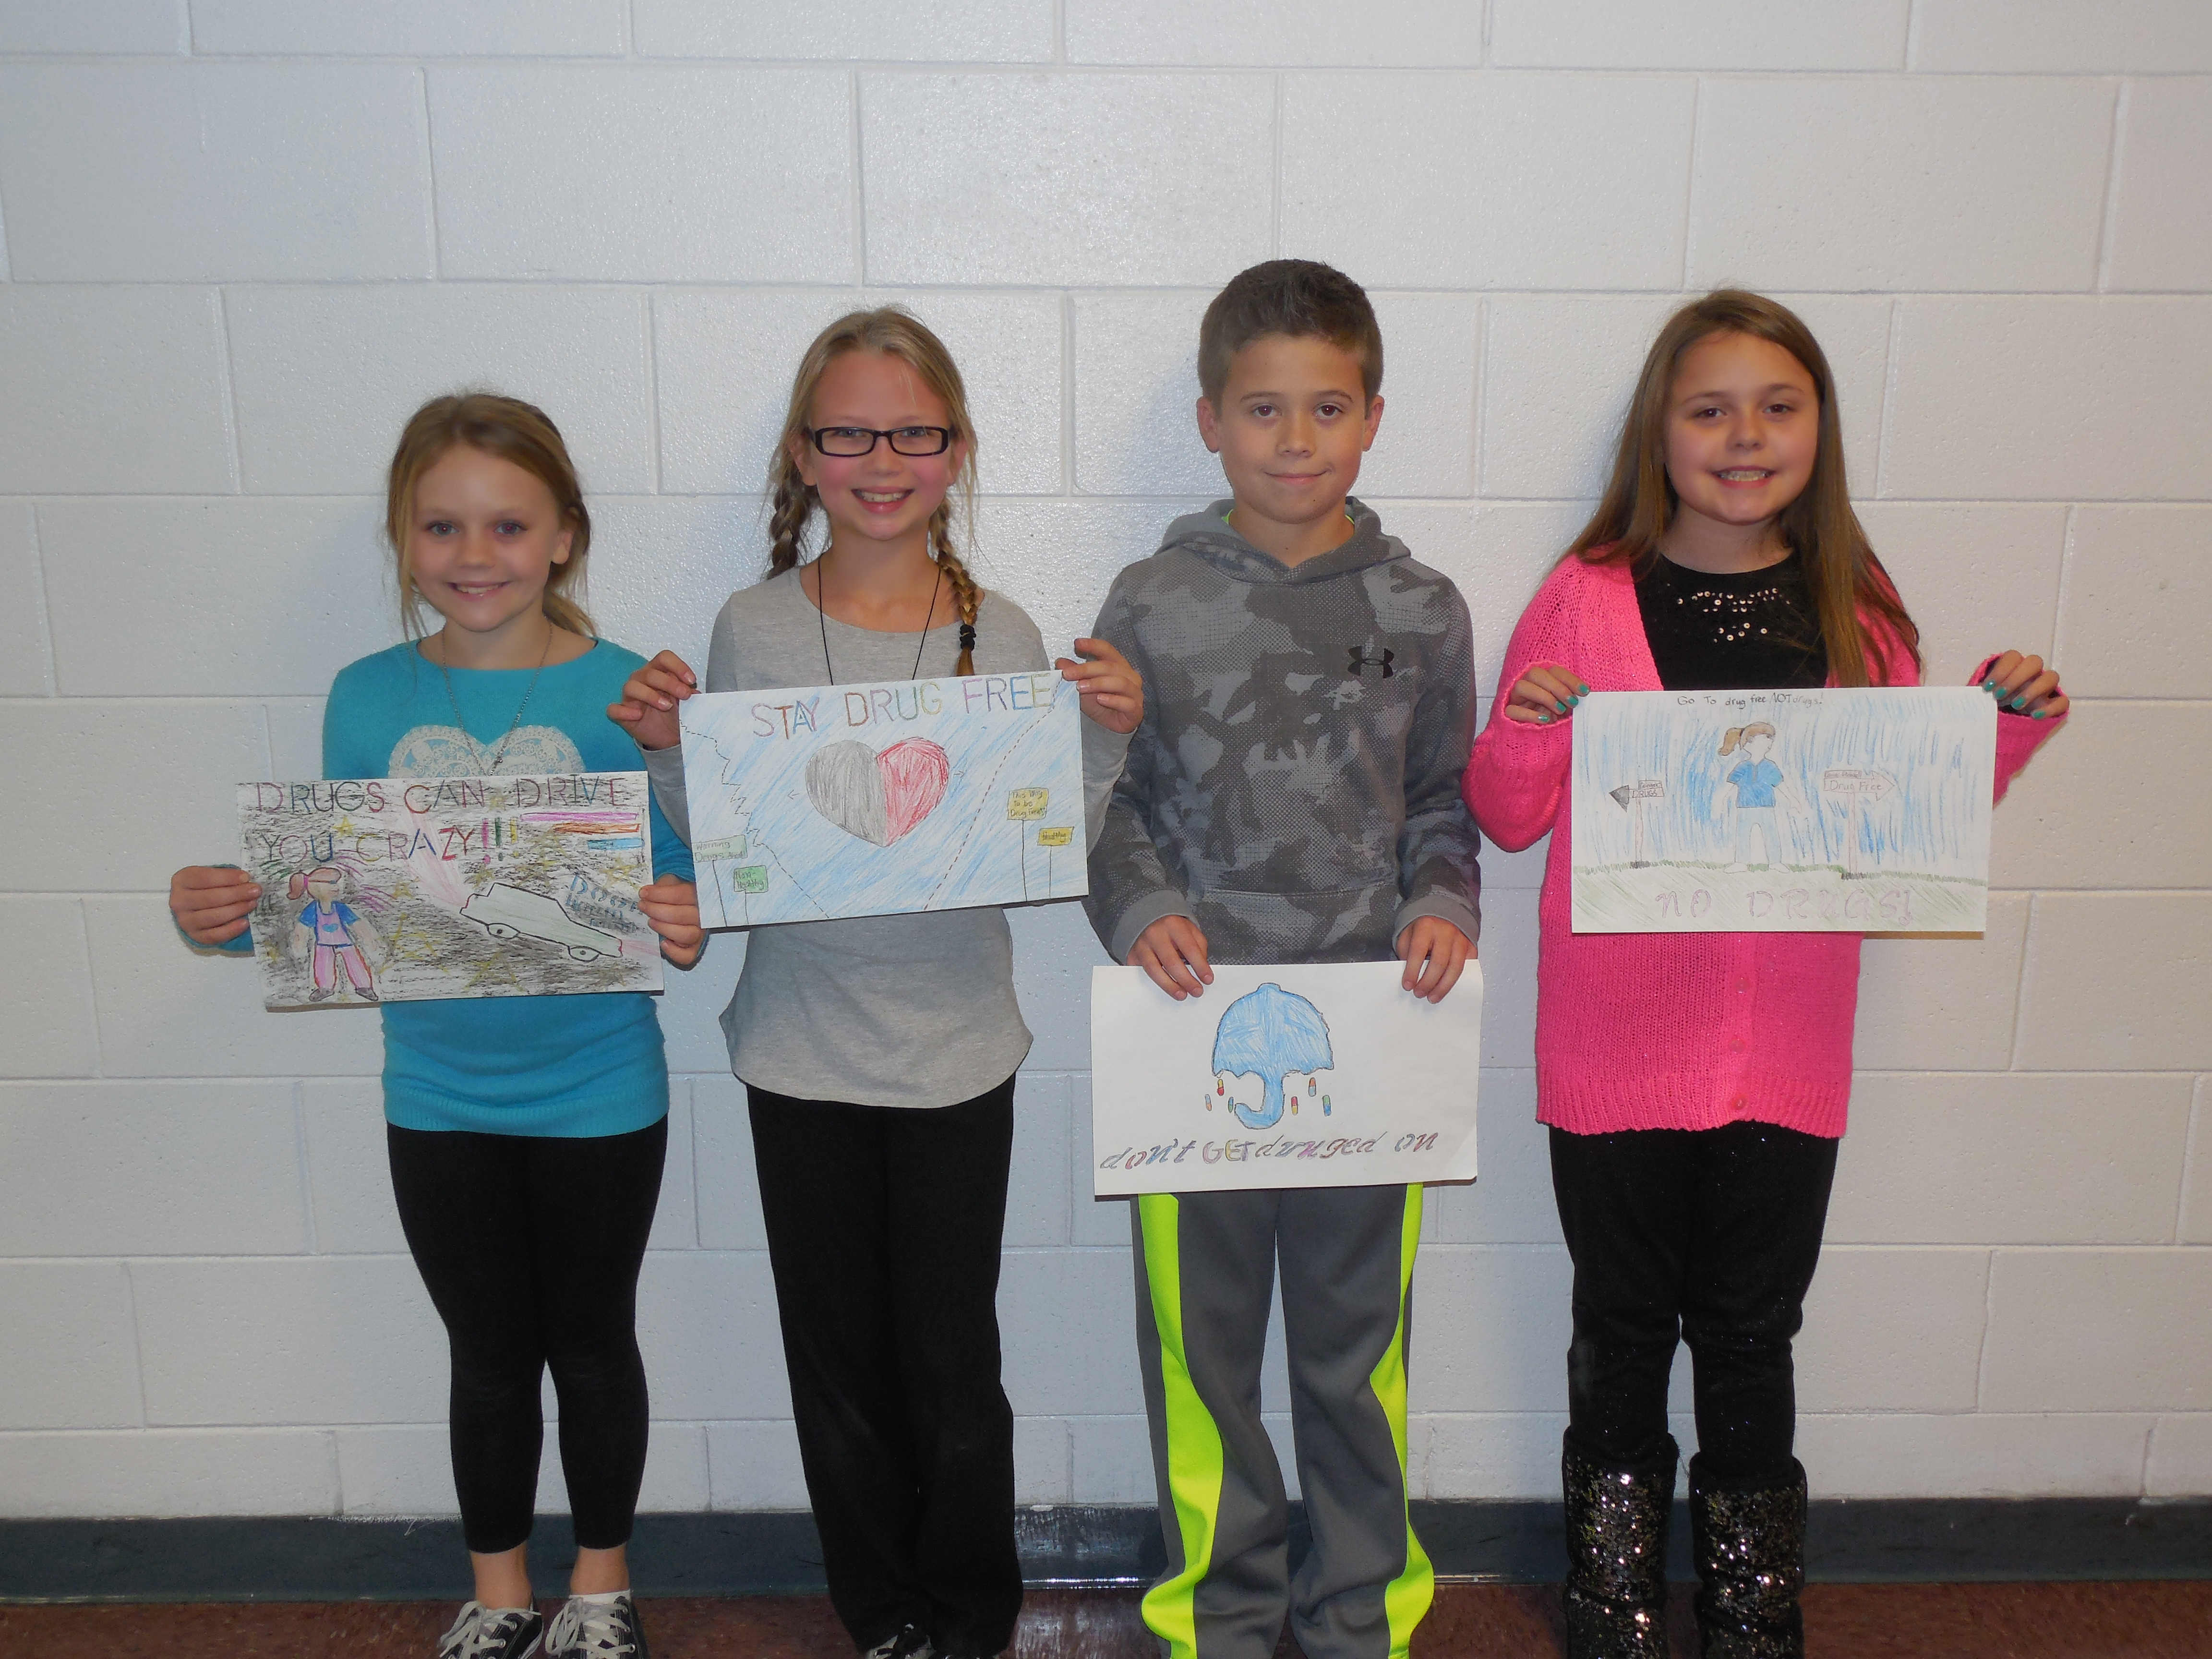 5th grade poster contest winners:  Saylor Burchett (1st place), Akira Nagel (2nd place), Cameron Harmon (tie—3rd place), and Maddie McFall (tie—3rd place).